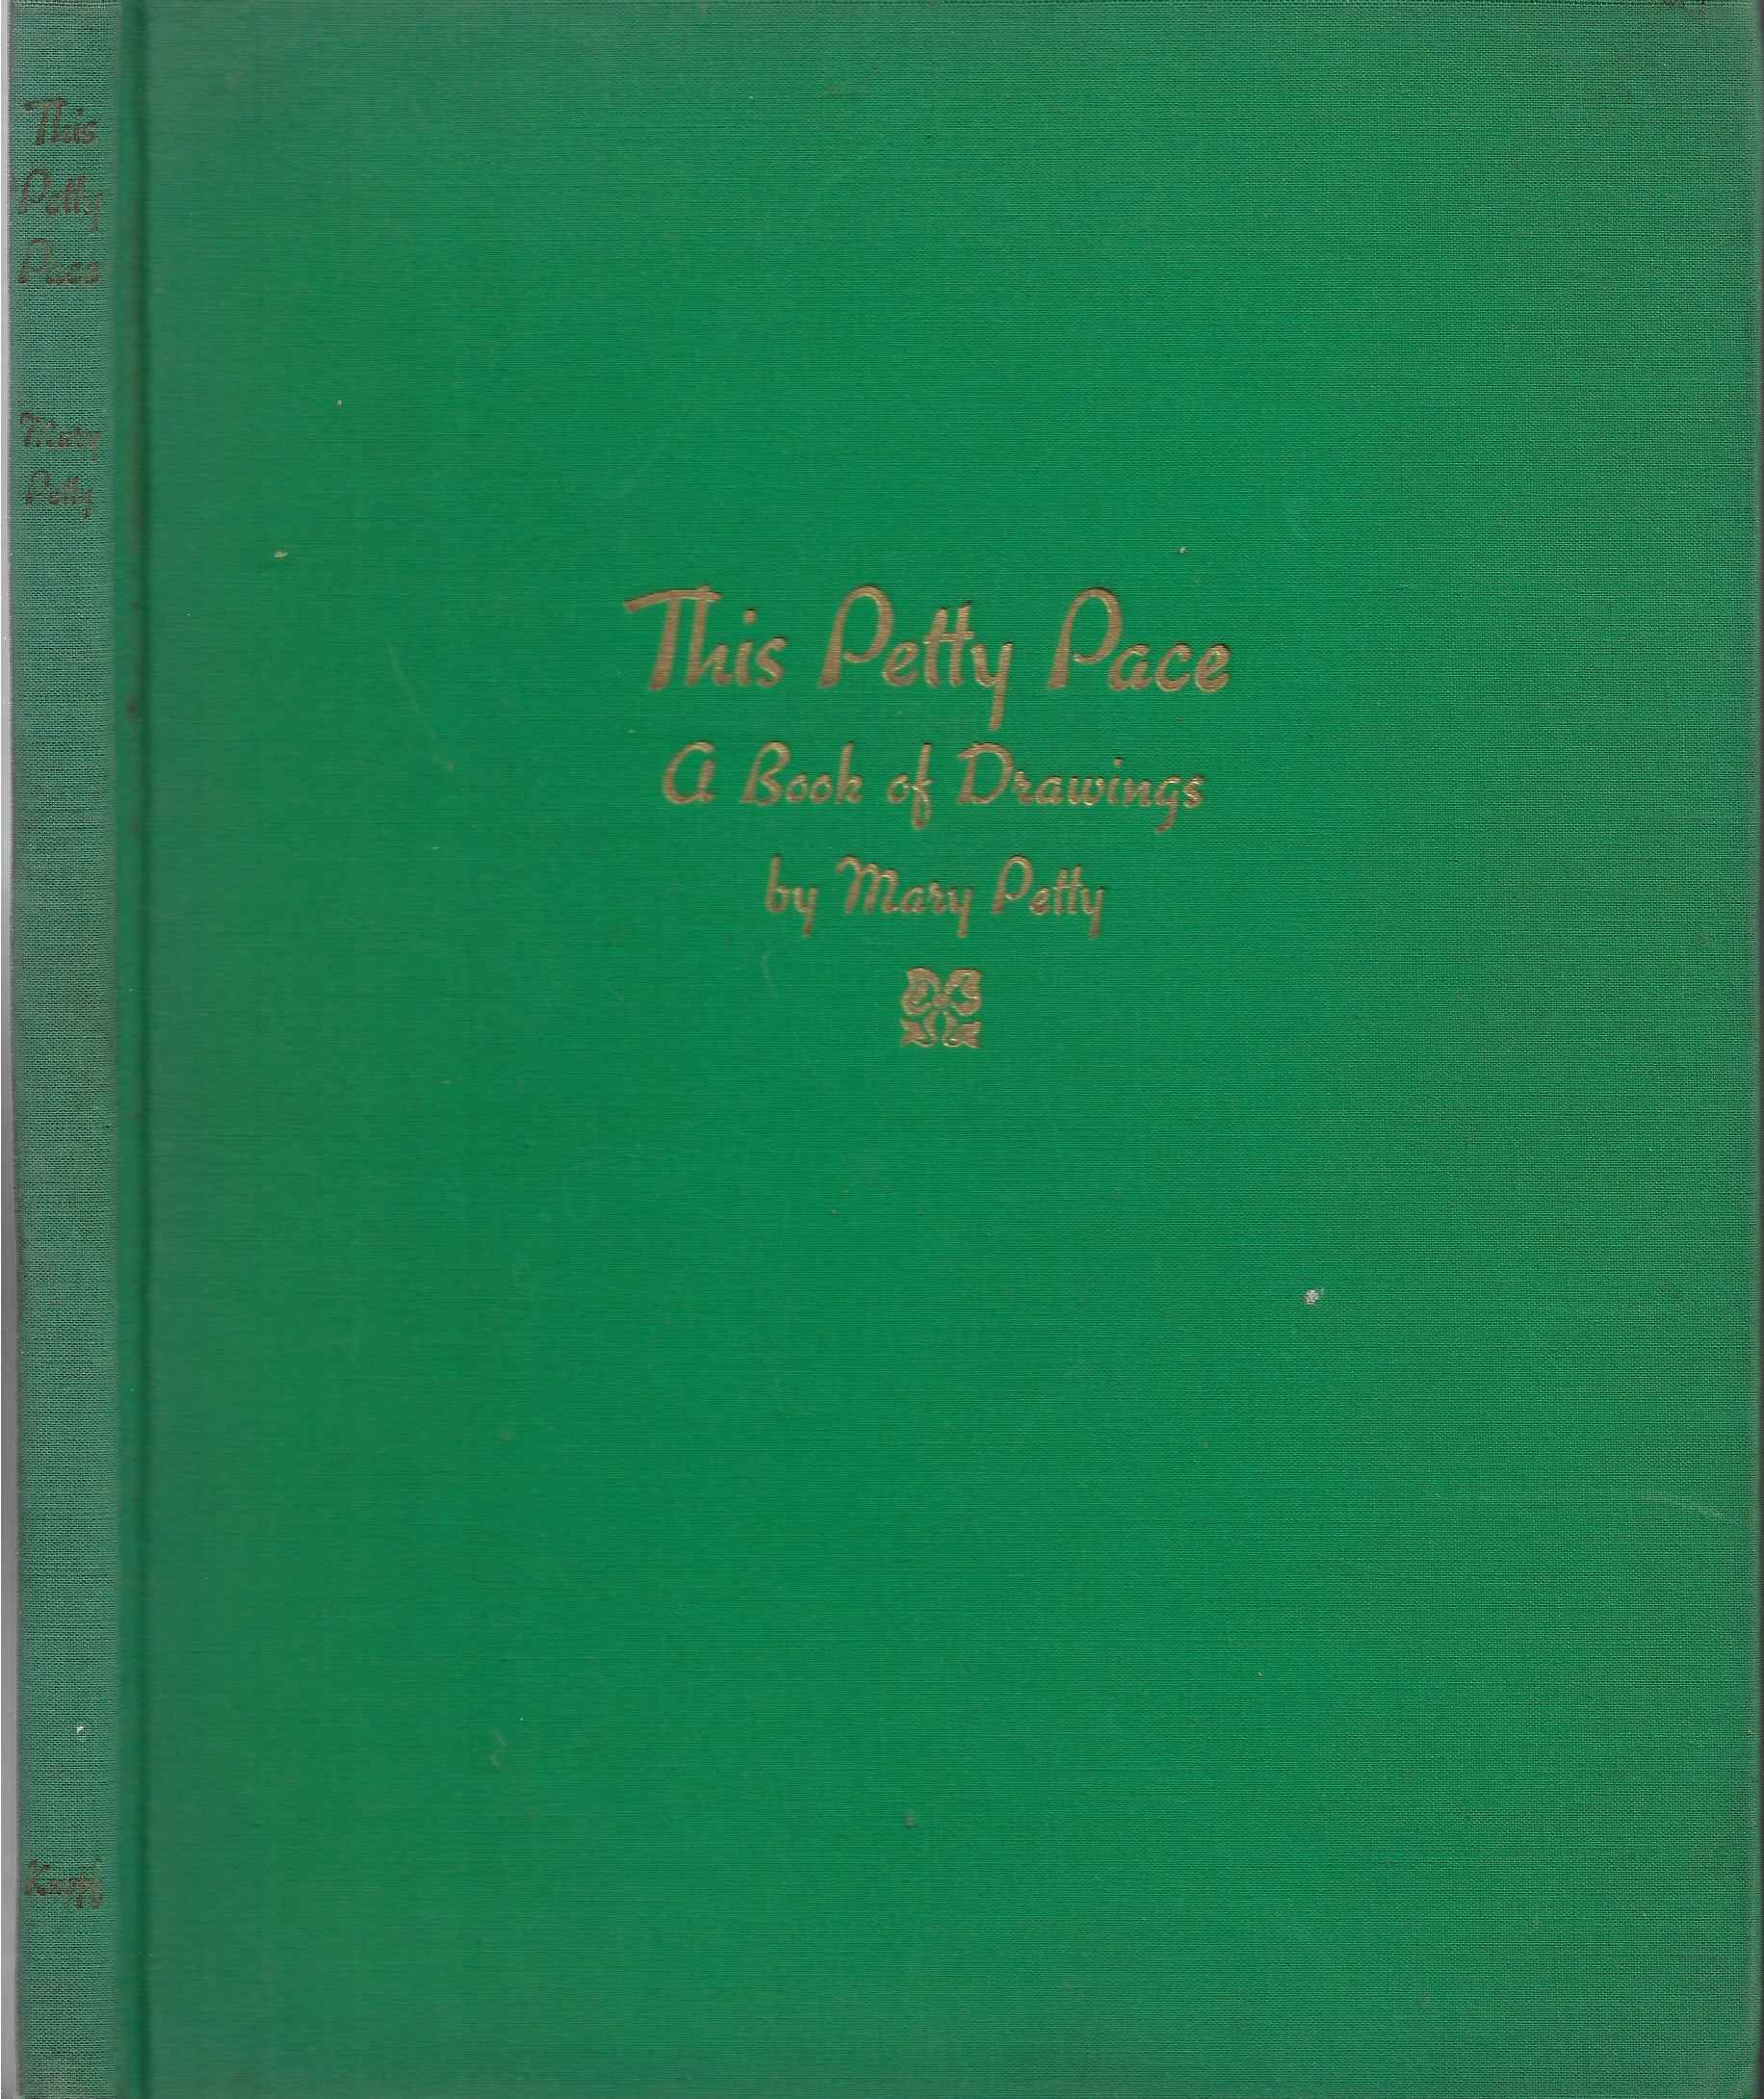 Image for THE PETTY PLACE A BOOK of DRAWINGS.